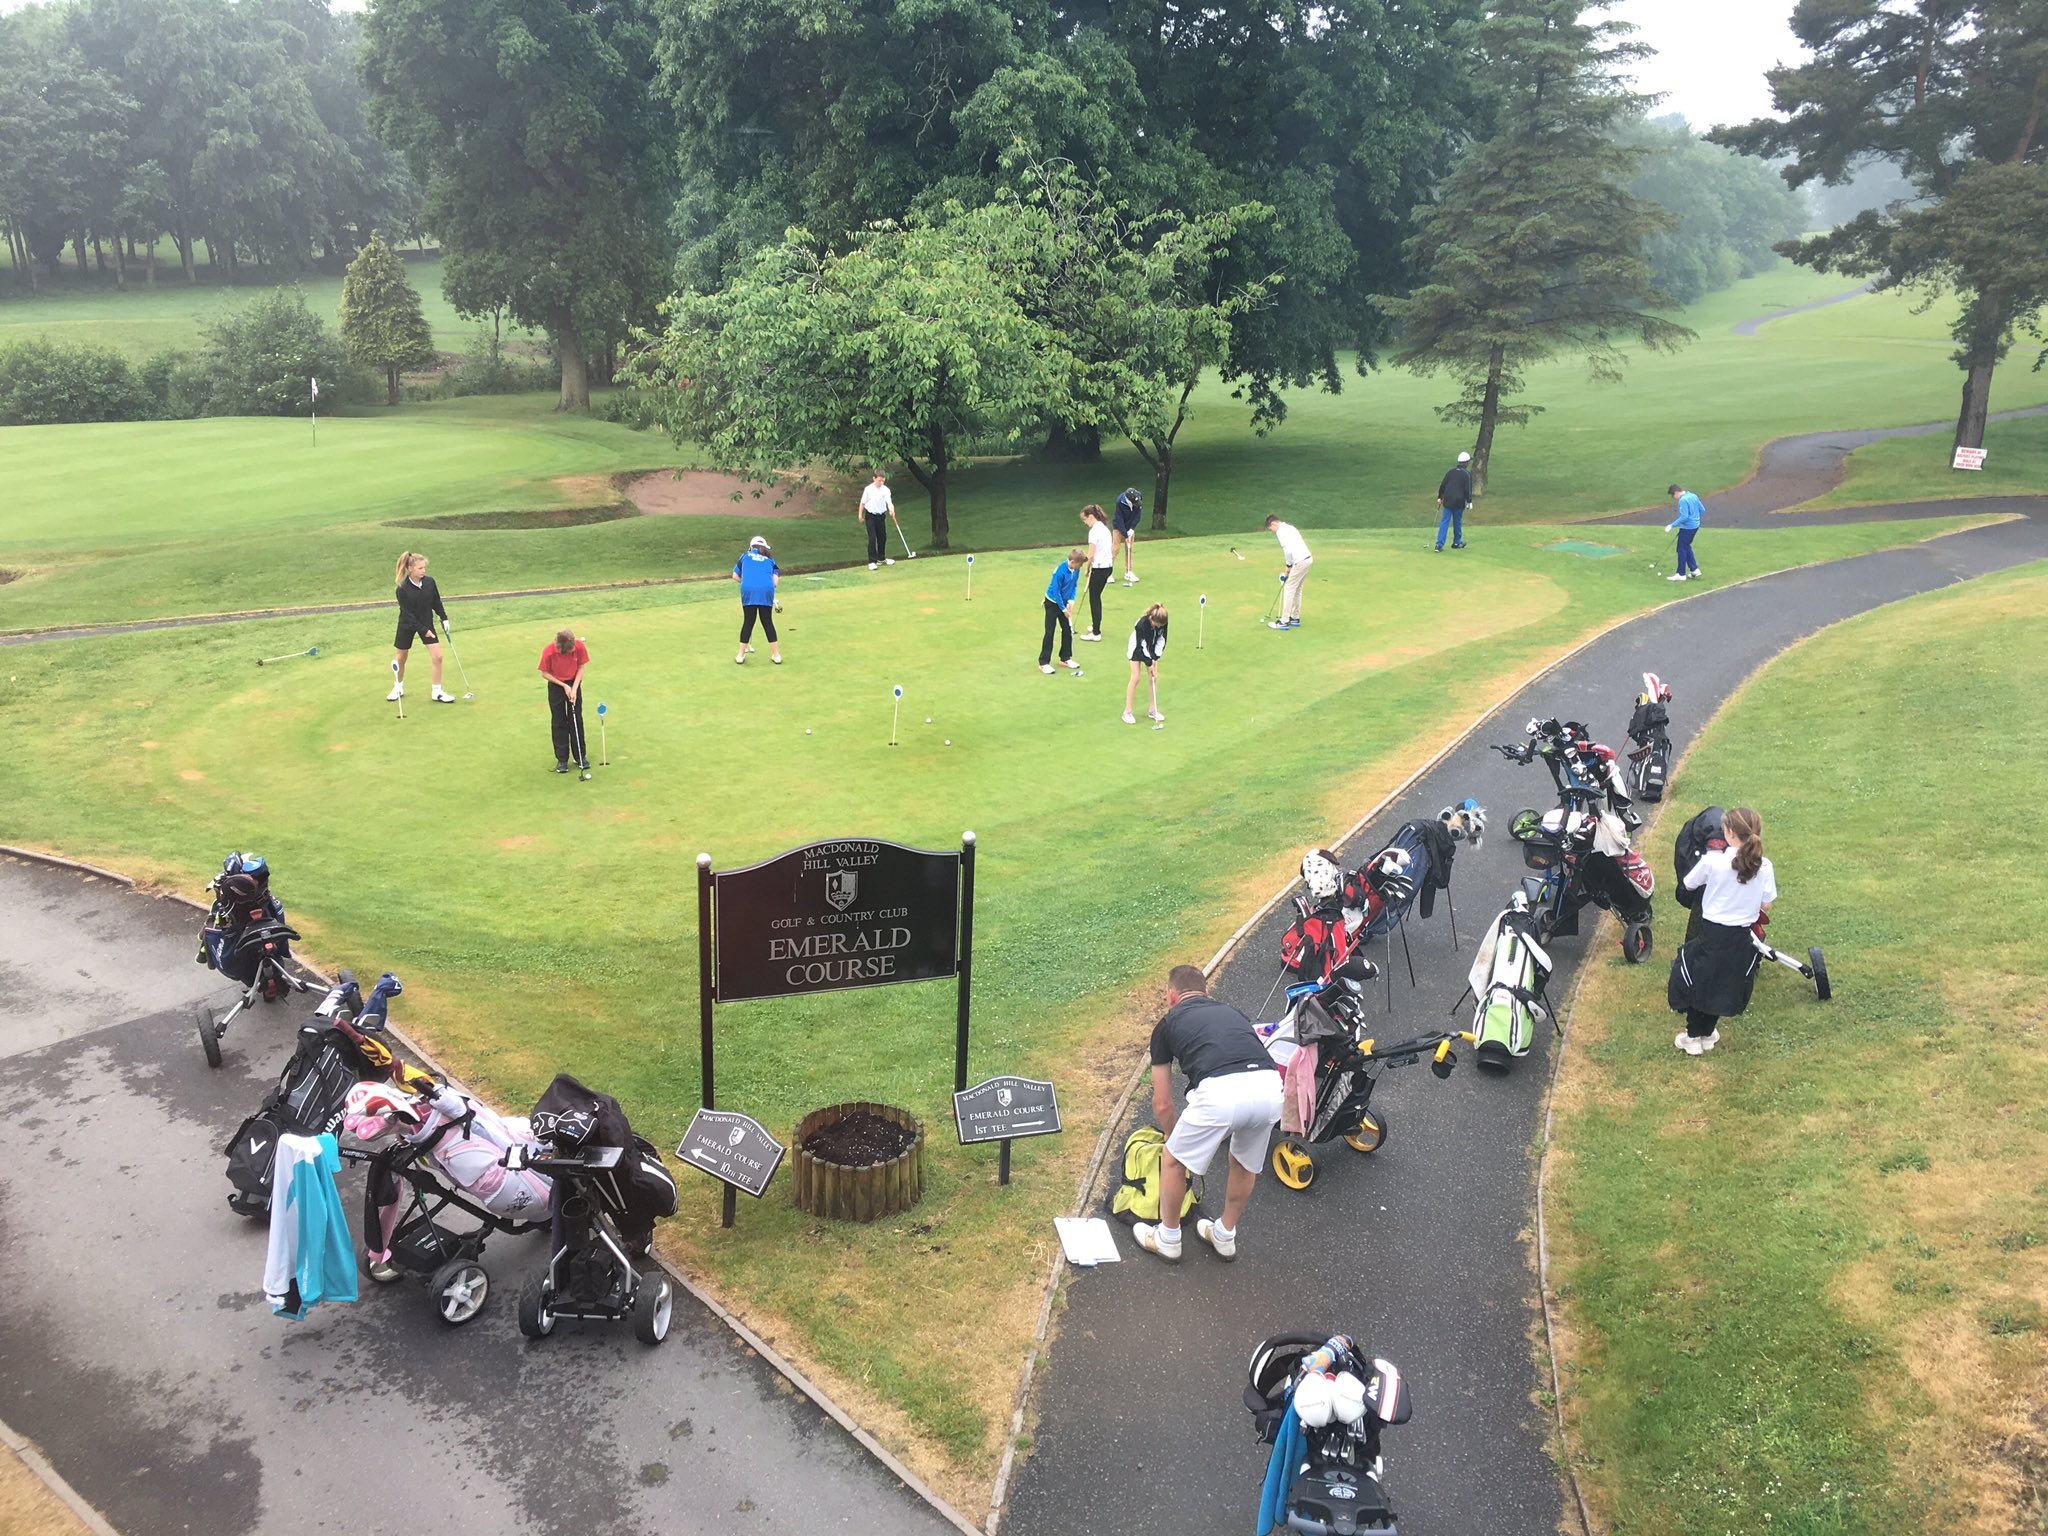 Children having last minute prep for IAPS National Golf Championships @MacHillValley today! Good luck to all golfers https://t.co/NPXat5DSzN